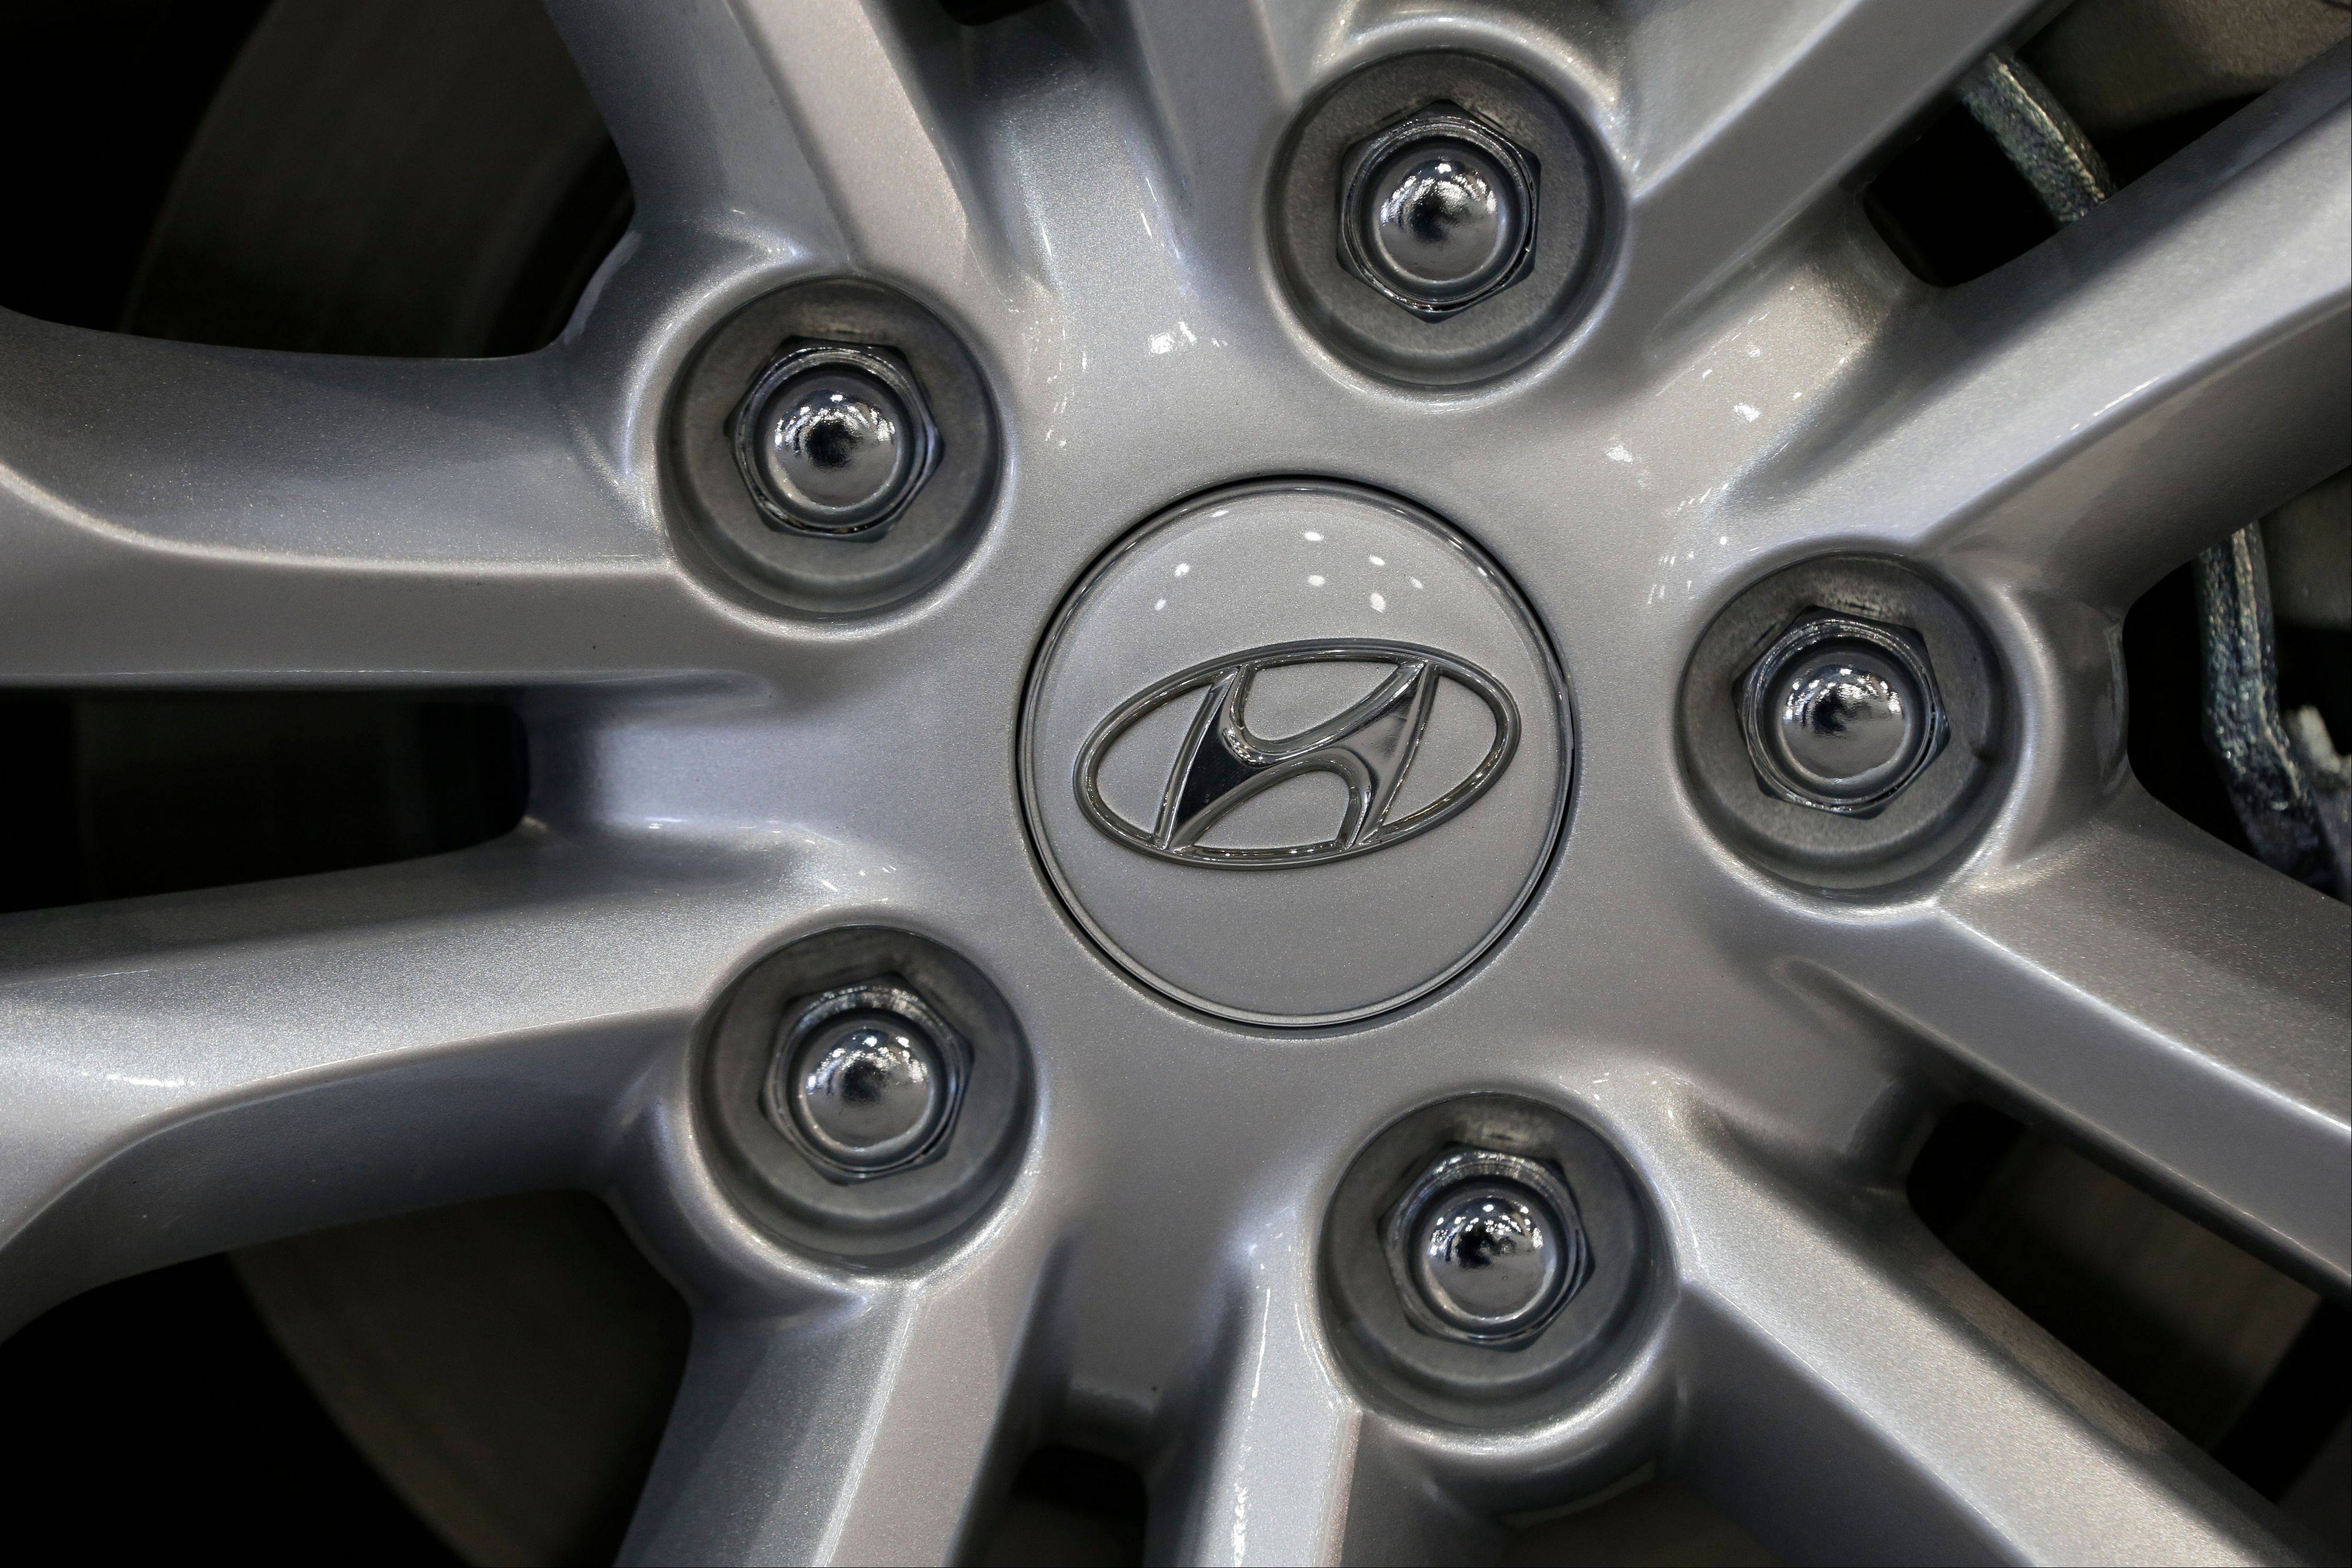 Hyundai Motor Co., South Korea's biggest automaker, reported a steeper profit drop than analysts estimated after the won appreciated more than any major currency, reducing the value of overseas sales. The stock fell.